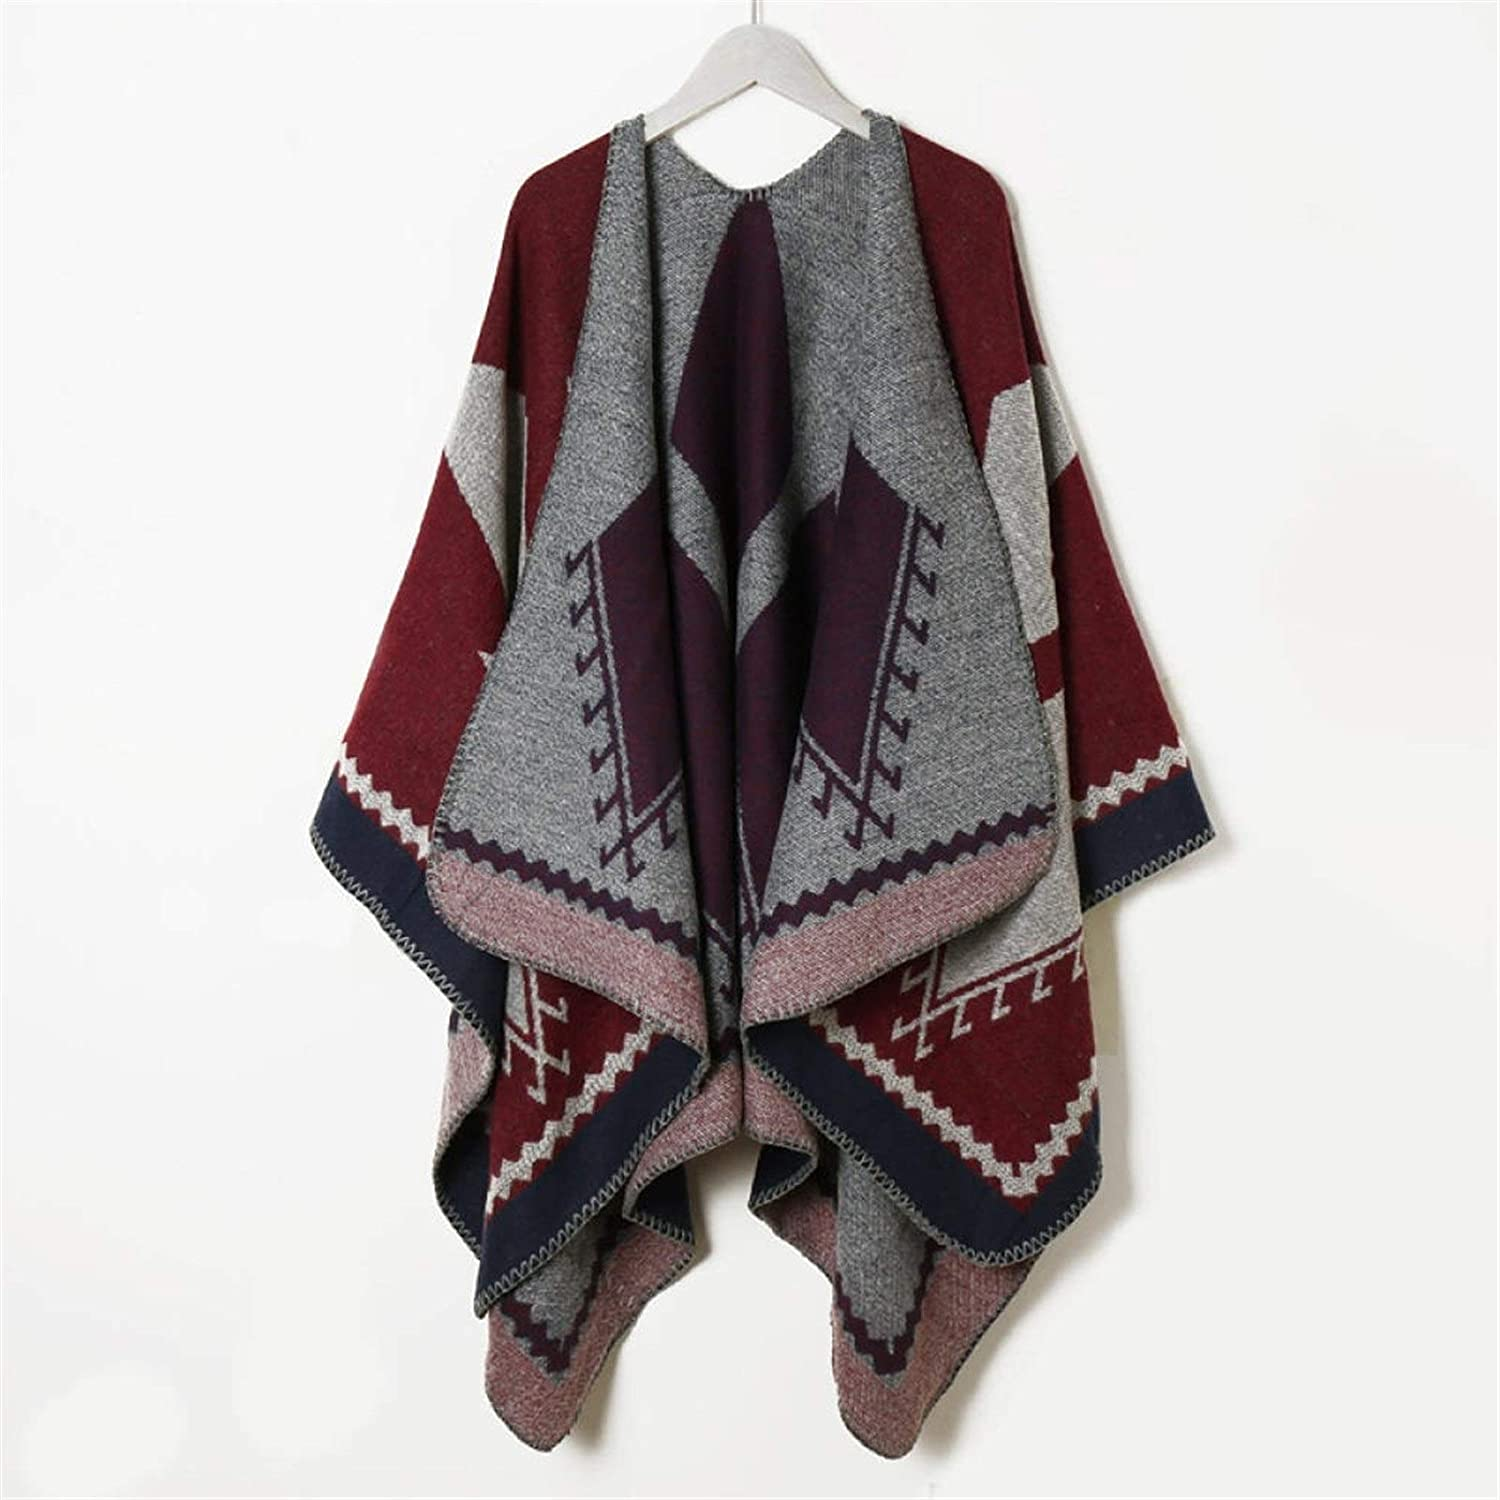 SYXMSM Autumn and Winter Scarf Wild Plaid Ladies Travel Shawl Imitation Cashmere Ethnic Style Split Thickened Cloak (Color : 3, Size : 130X150cm)